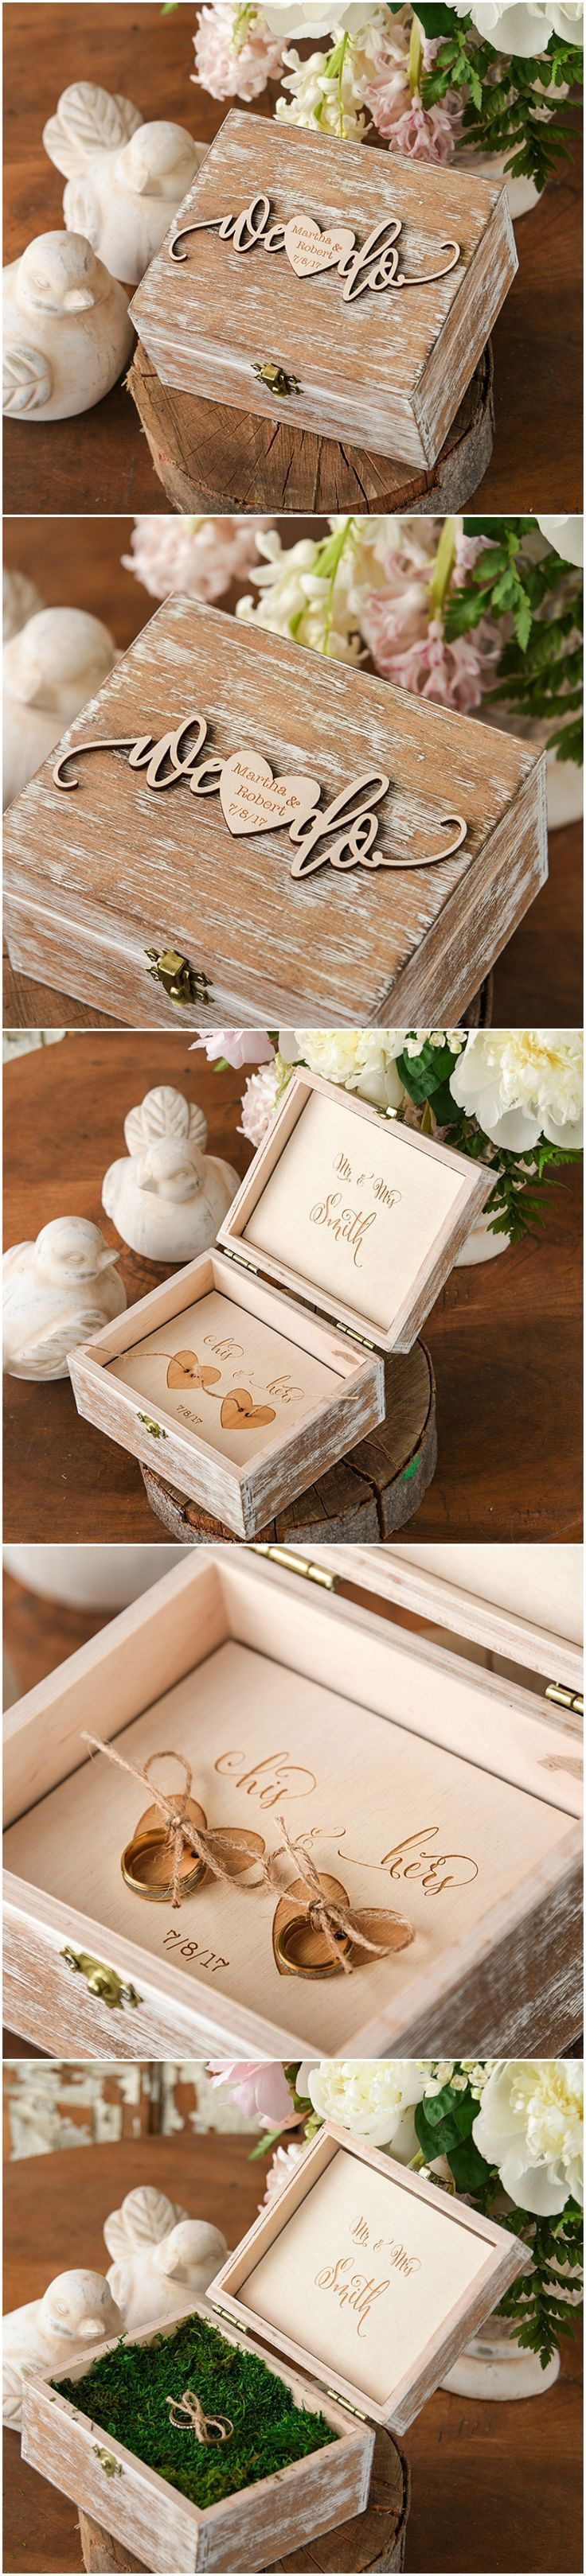 Wooden Ring Bearer Box - We Do #countrywedding #rusticwedding #dpf